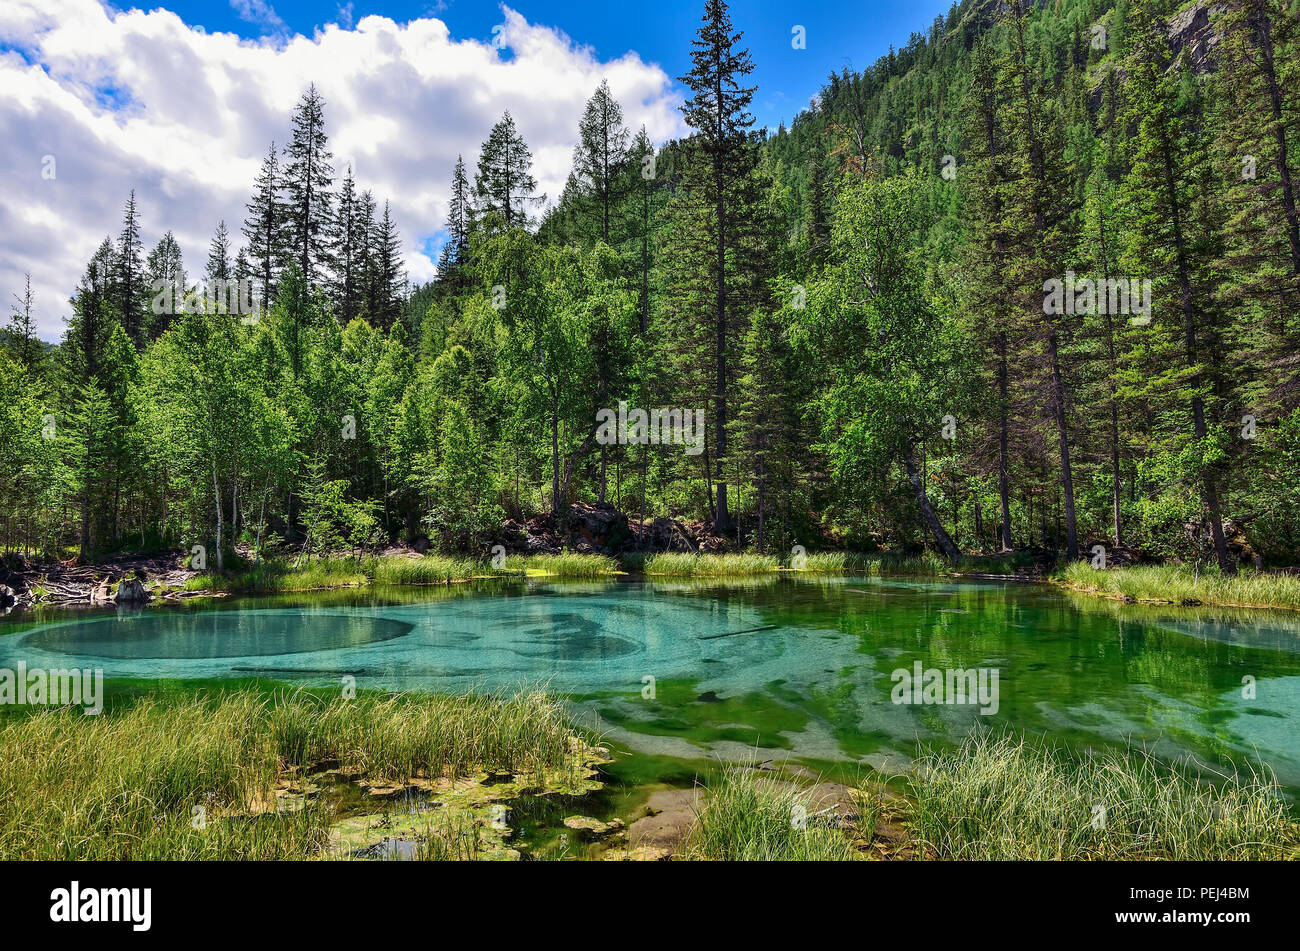 Amazing blue geyser lake in the mountains of Altai, Russia. Unique turquoise lake with crystal clear water and oval circular divorces, which change be - Stock Image